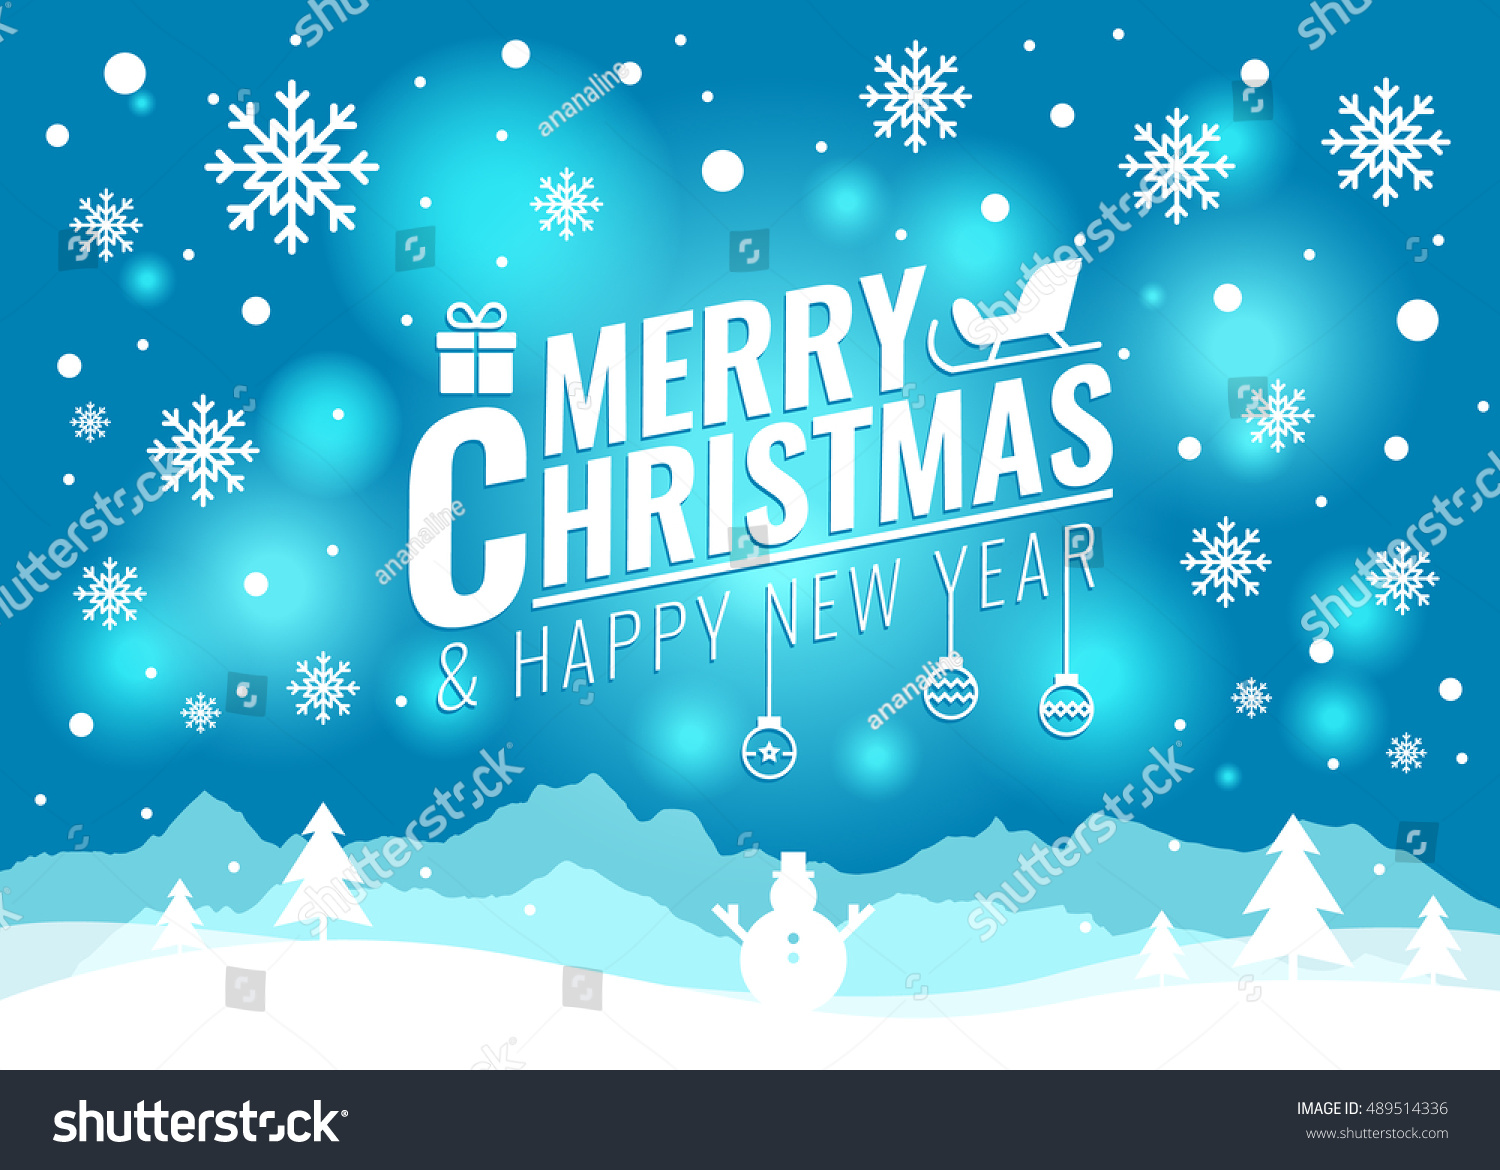 Merry christmas happy new year card stock vector 489514336 merry christmas and happy new year card christmas tree and snow snowman on blue light kristyandbryce Choice Image